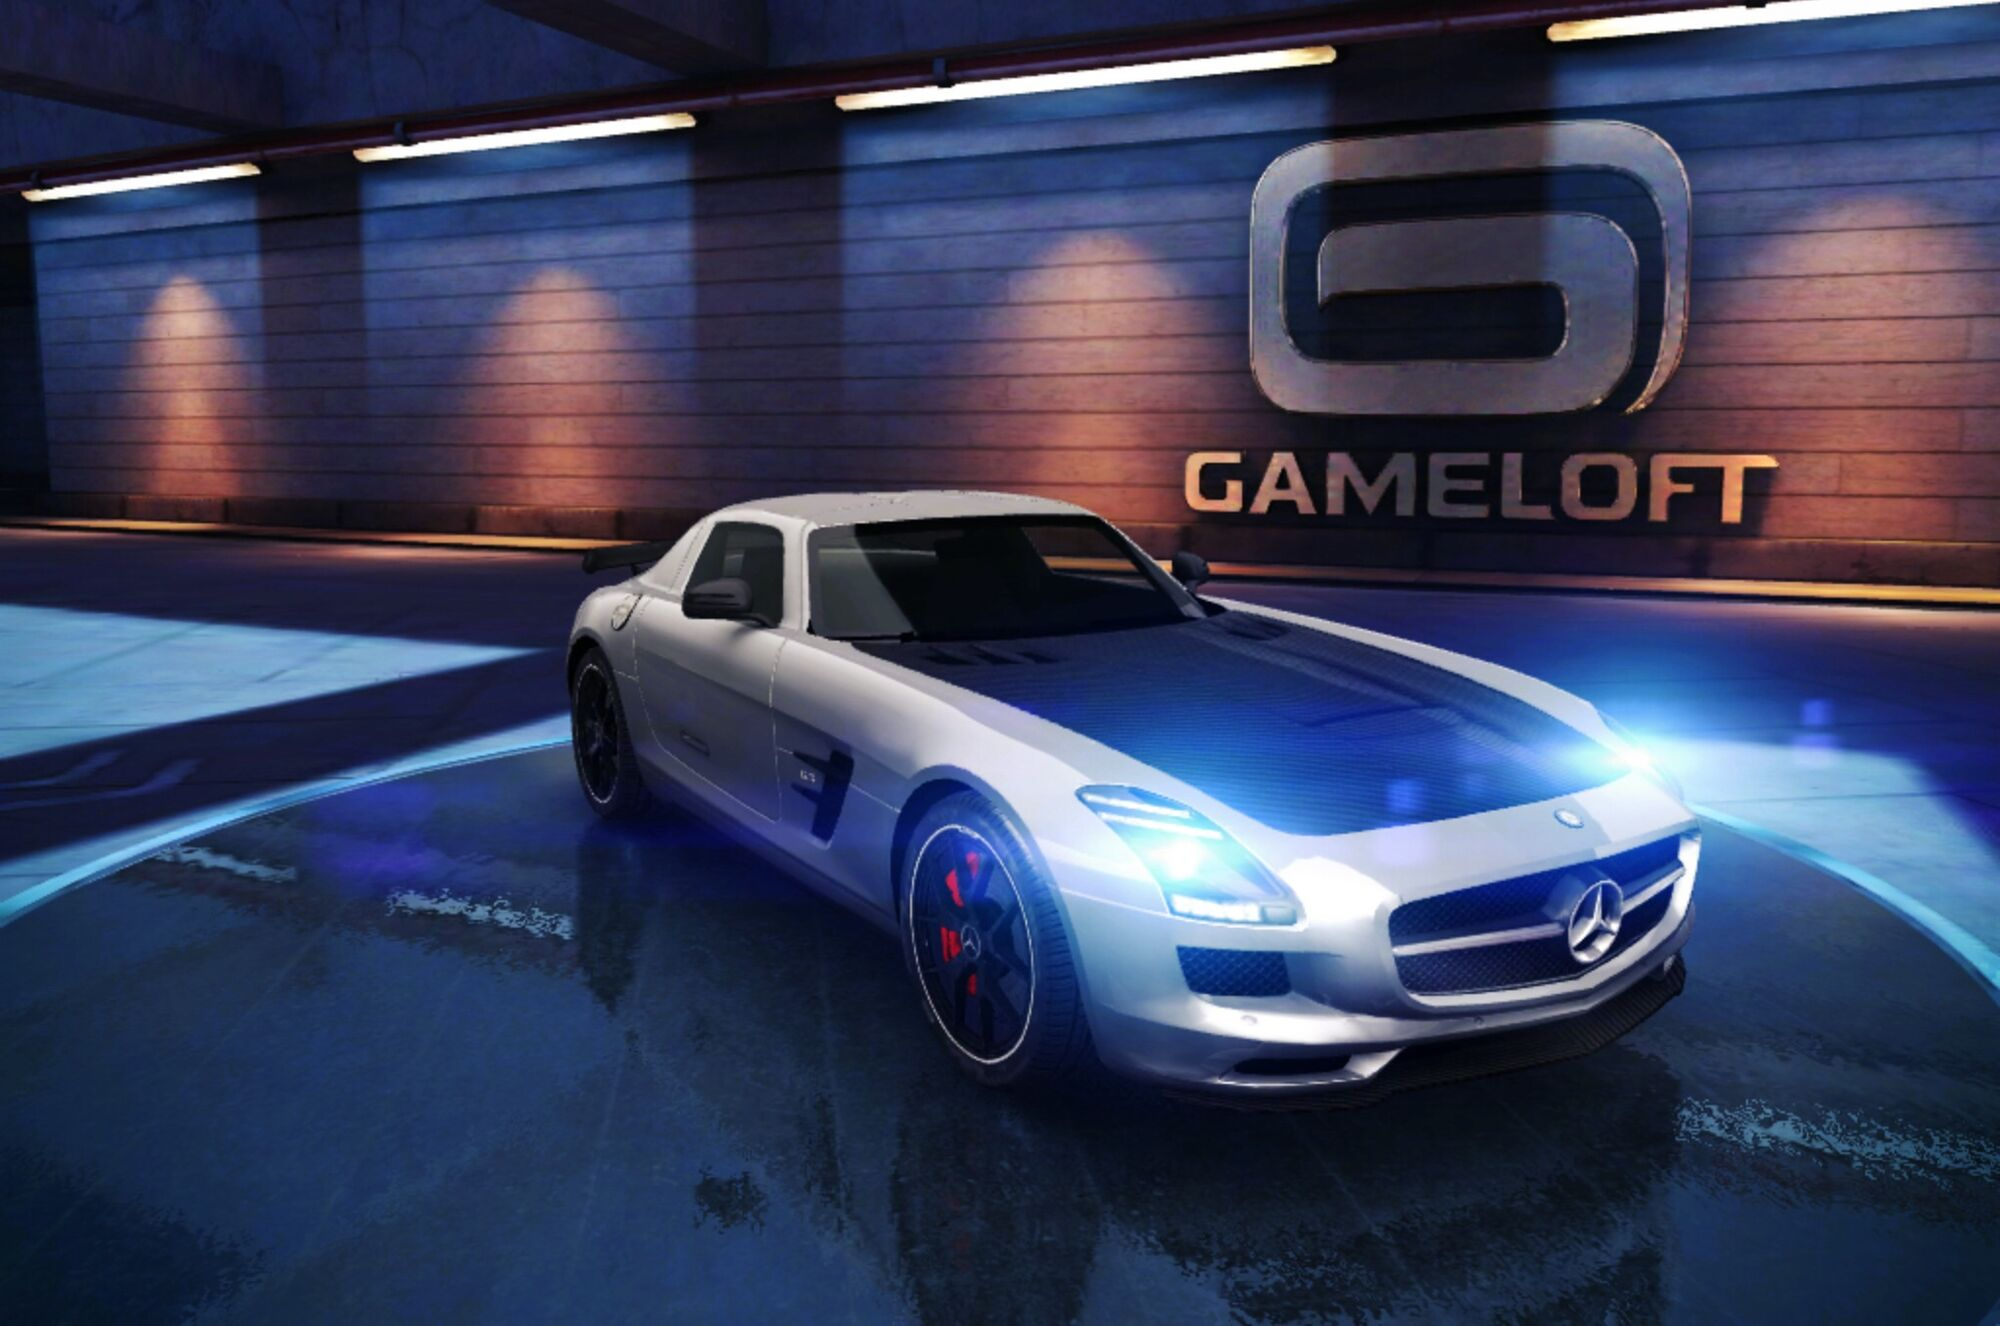 mercedesbenz sls amg gt coup final editiongallery asphalt wiki fandom powered by wikia - Mercedes Benz Biome Blue